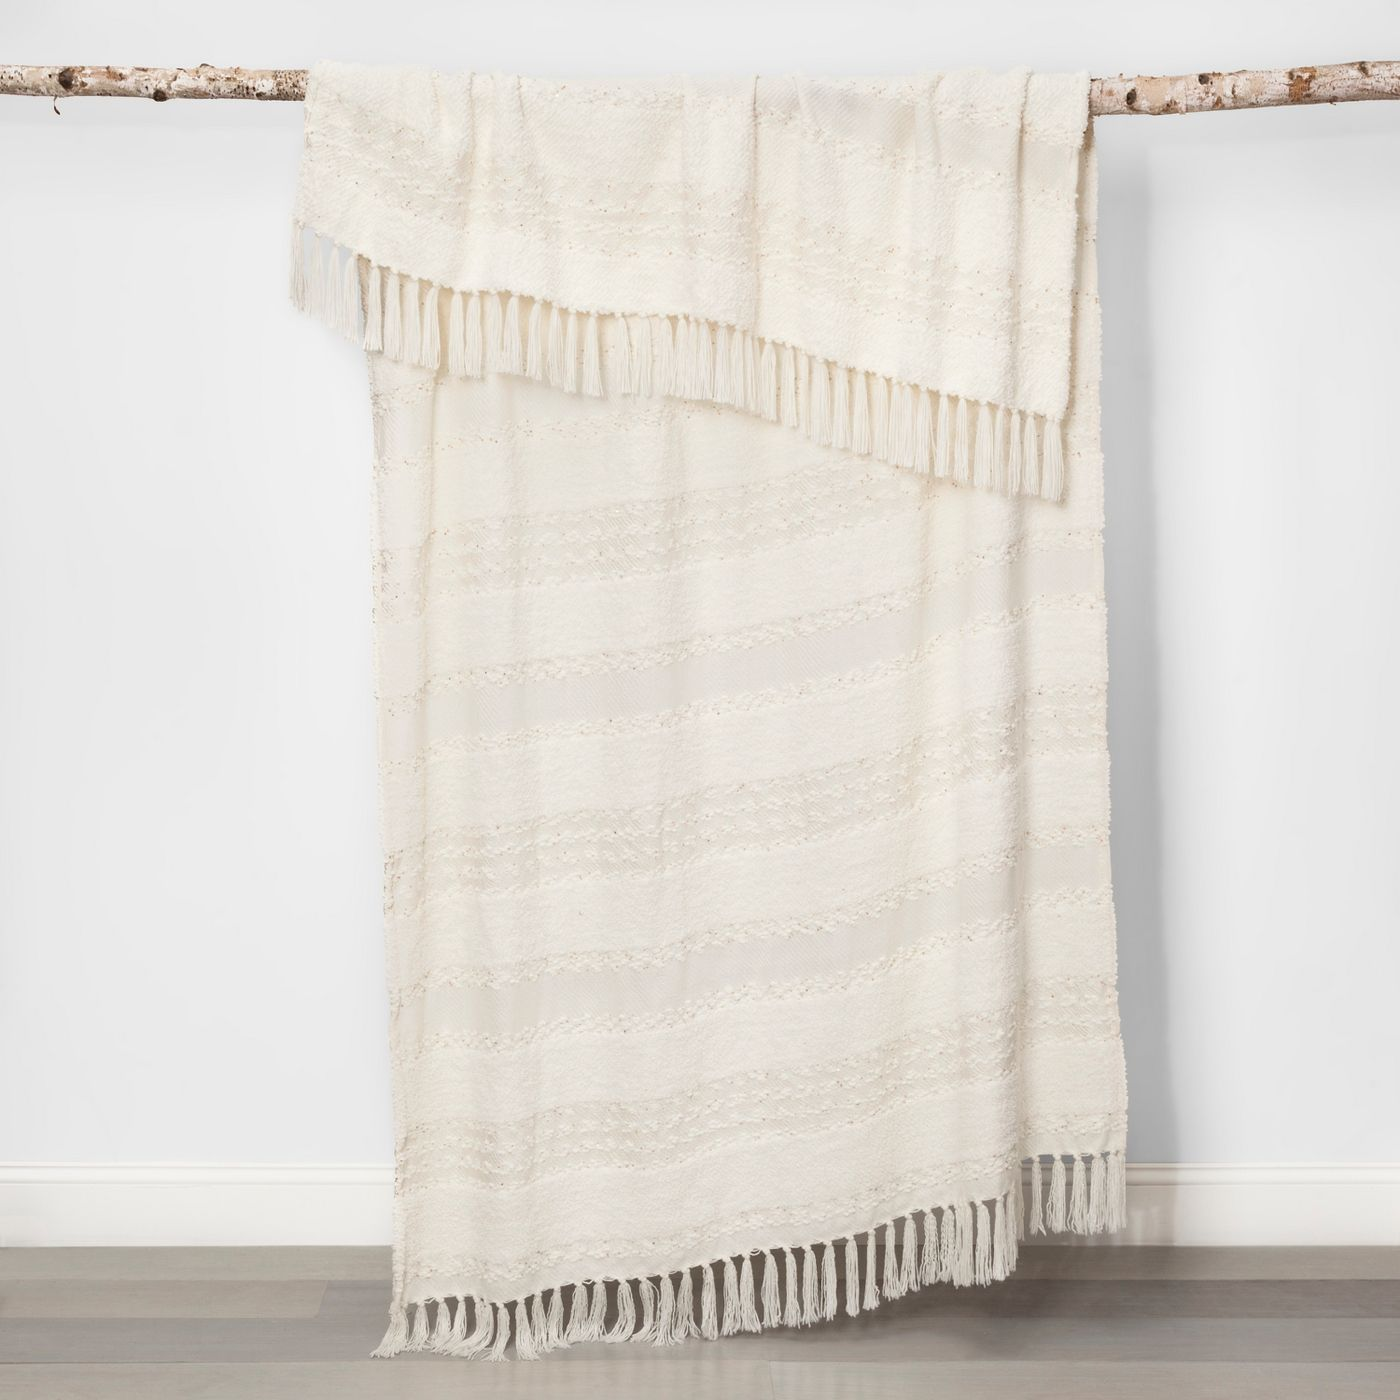 Chenille Moroccan Wedding Bed Throw Cream - Opalhouse™ - image 2 of 5